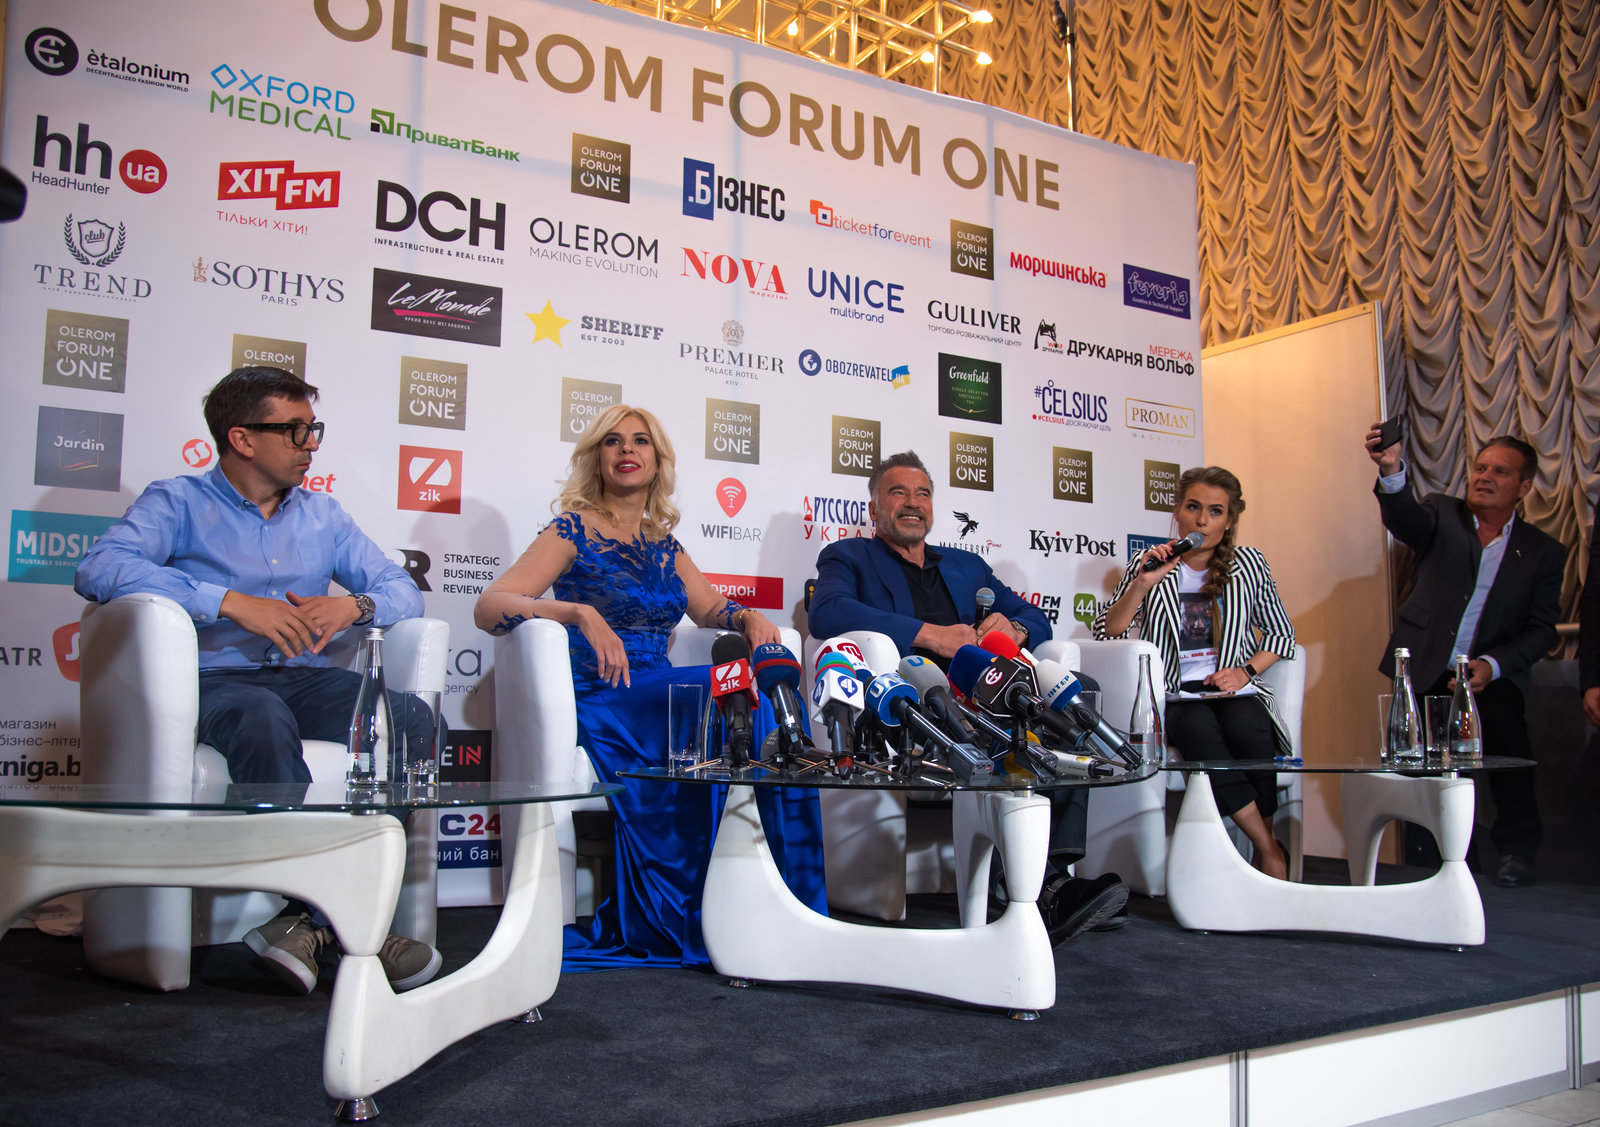 Olerom Forum One 2018